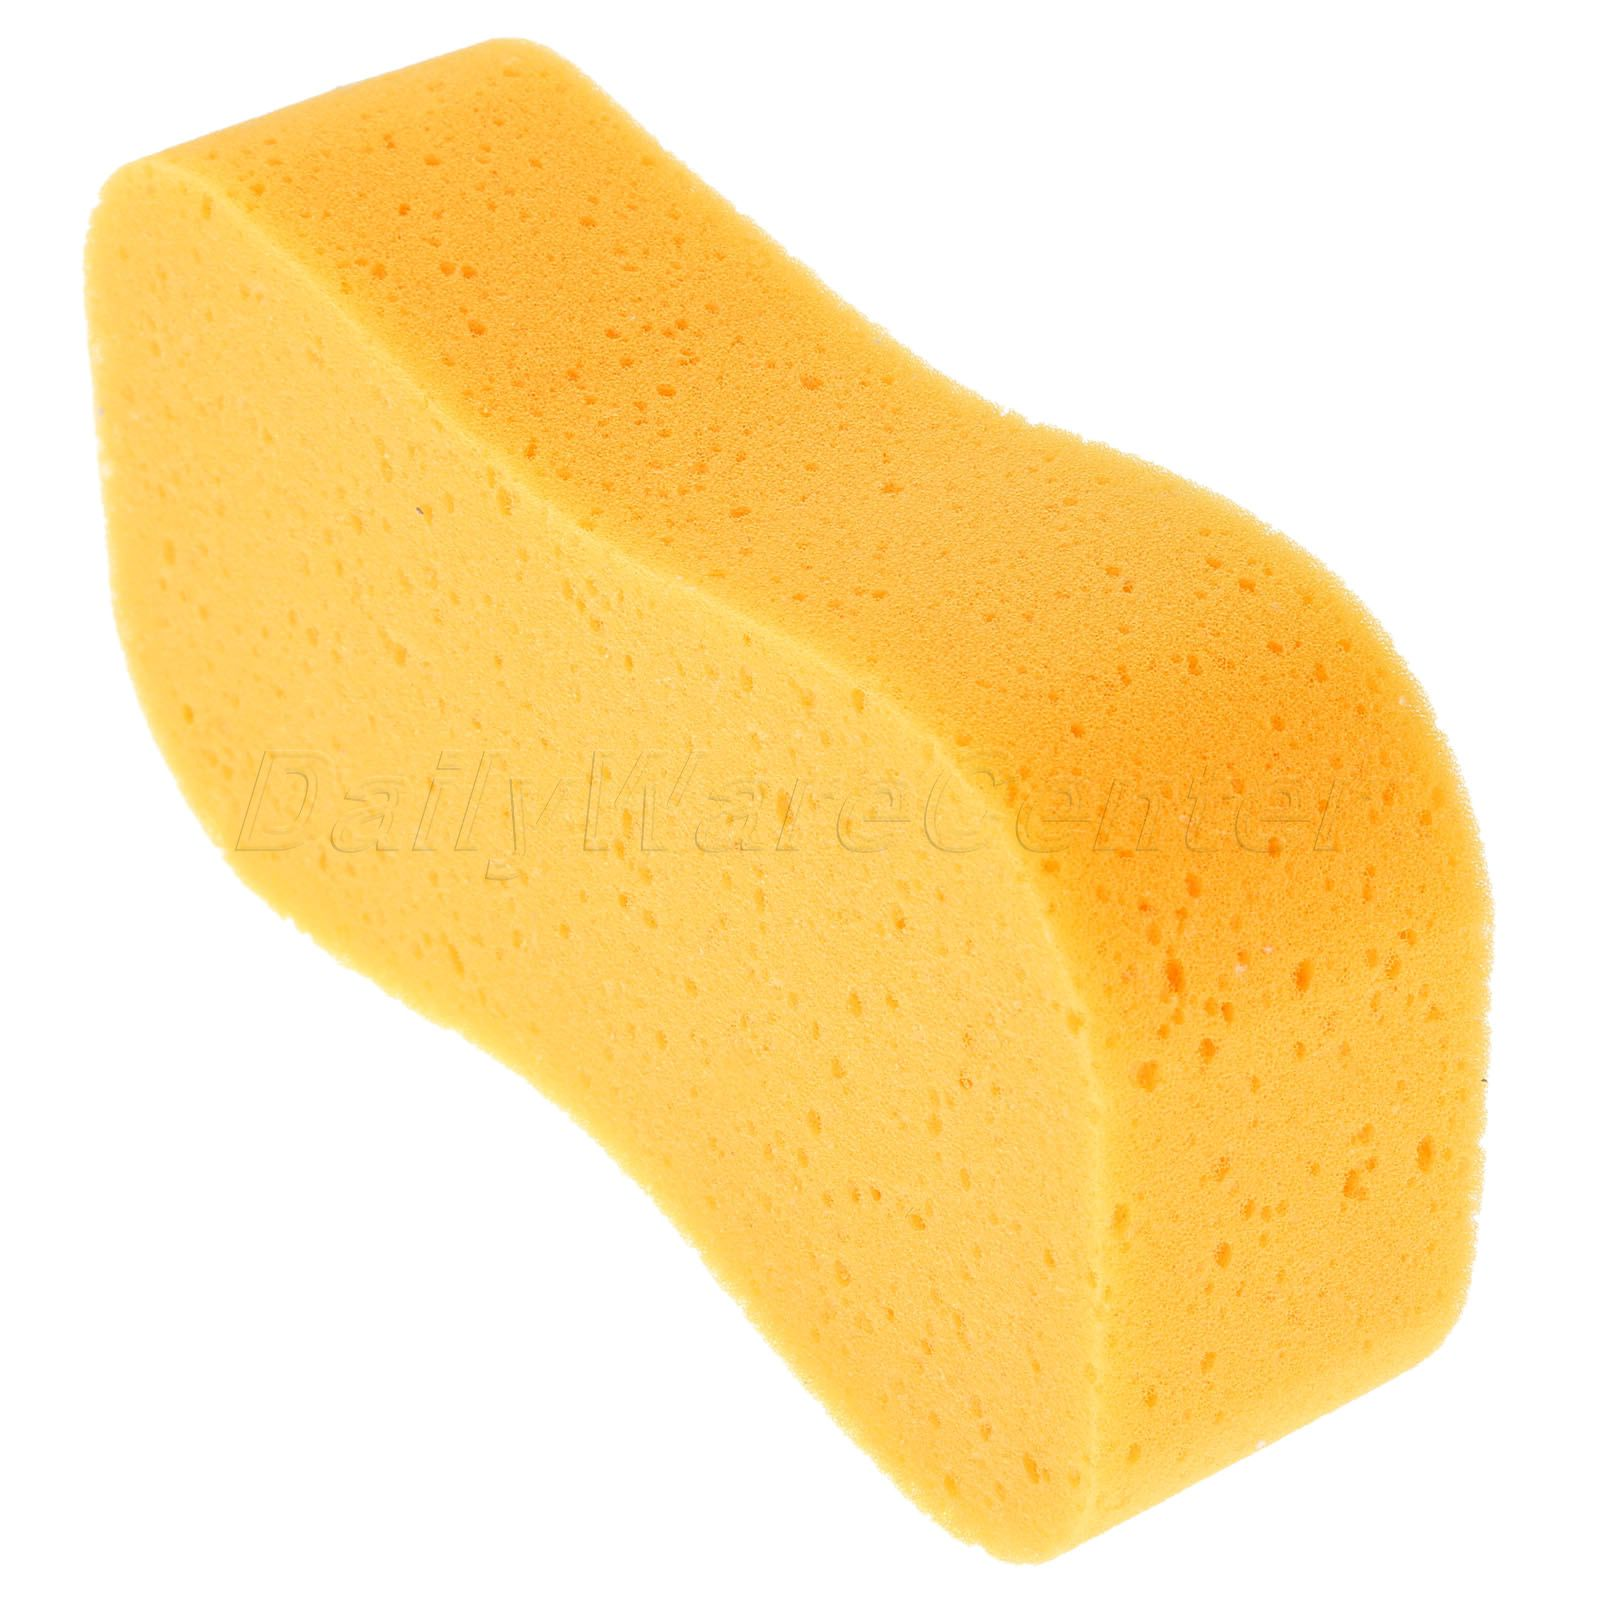 High Foam Multifunction Cleaner Tool Car Tyre Brush Wash Sponge Cleaning Detailing Pad Clean Car Yellow Washing Sponges in Sponges Cloths Brushes from Automobiles Motorcycles